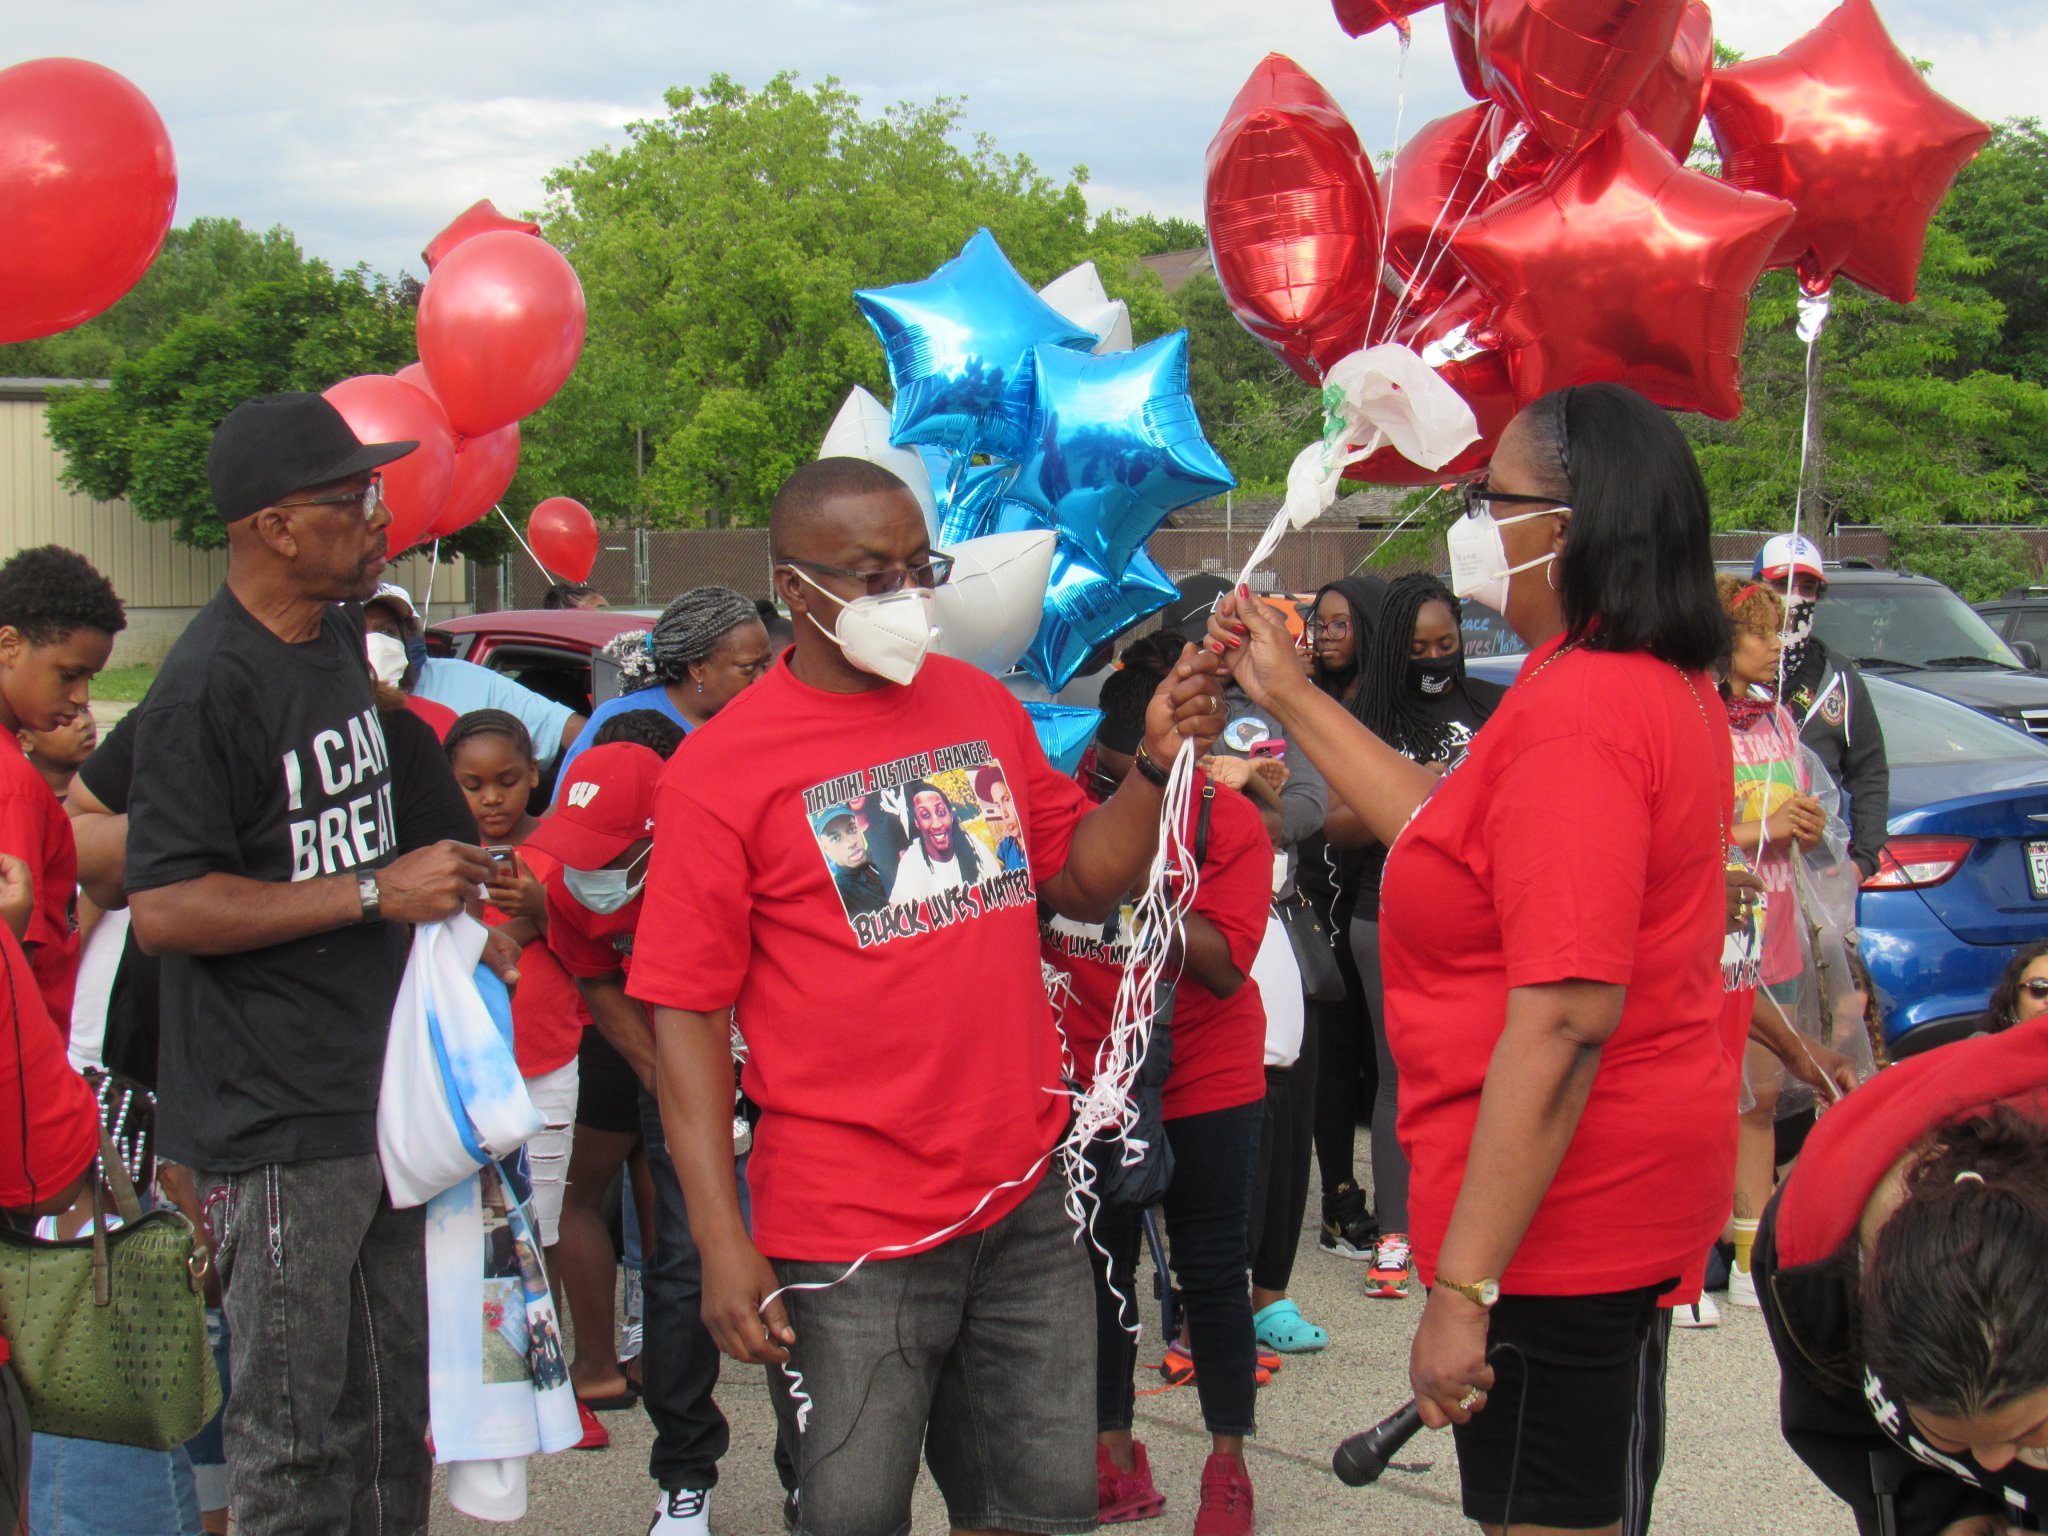 Jay Anderson, St. and his wife Linda gather with their family, holding balloons to honor Jay Jr. Photo by Isiah Holmes/Wisconsin Examiner.